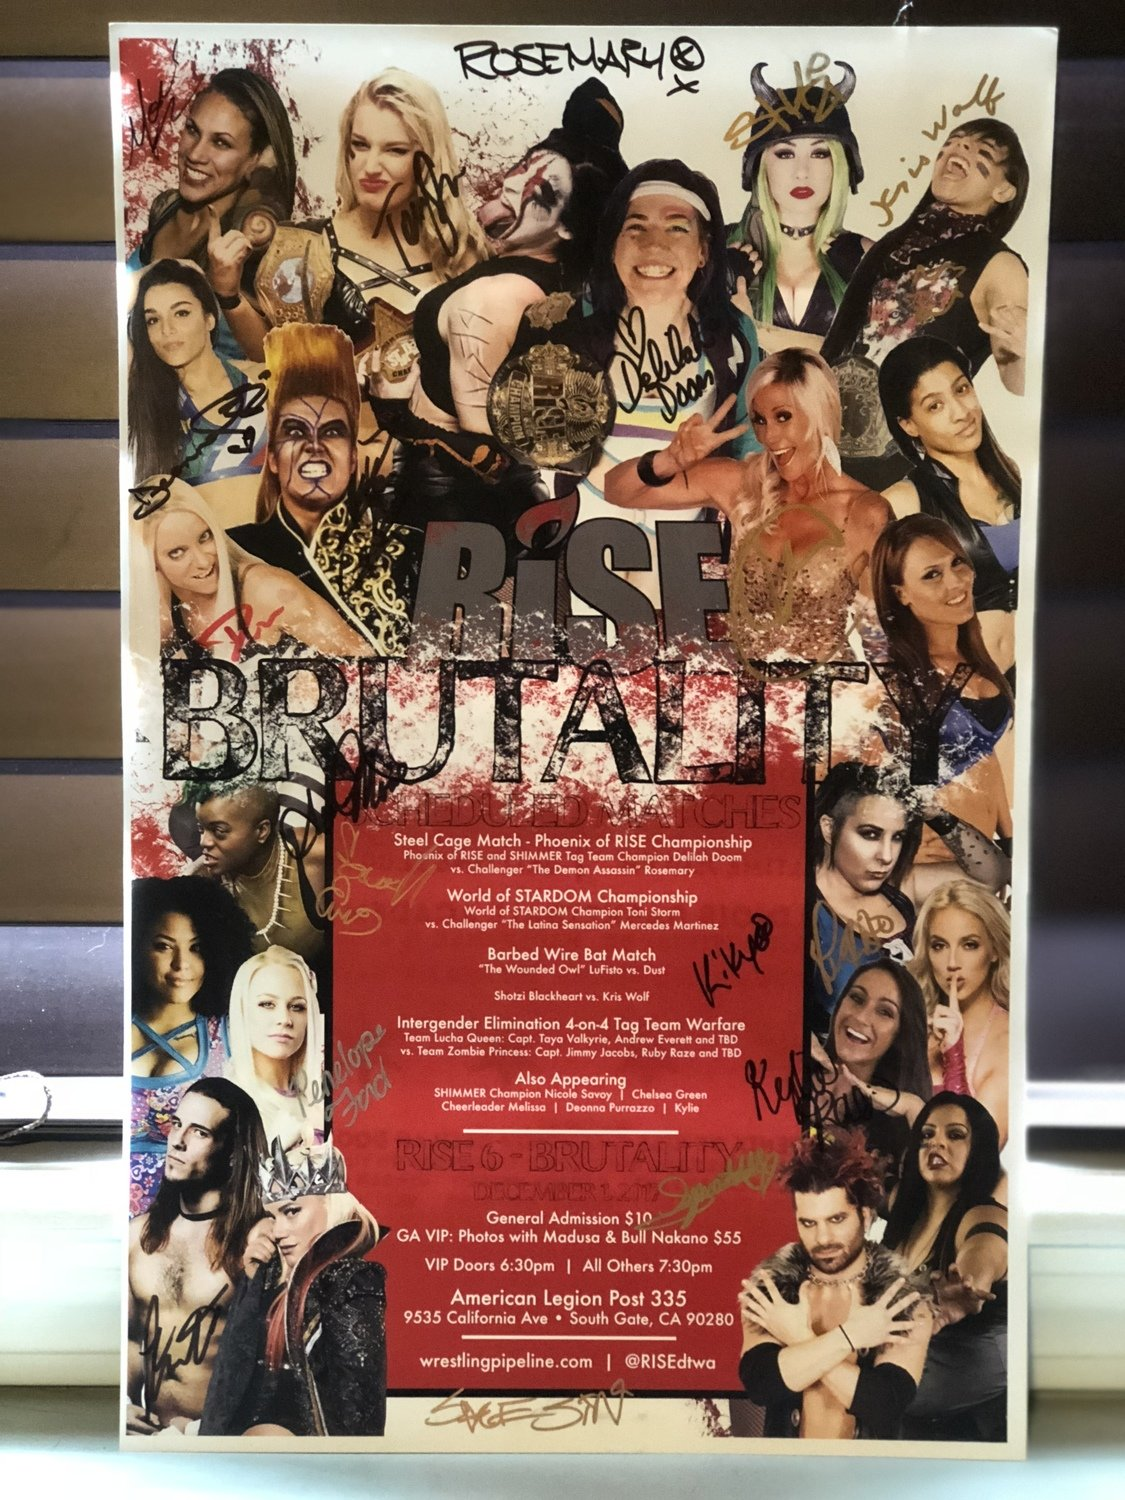 RISE 6 - BRUTALITY Poster Signed (Includes Madusa and Bull Nakano)